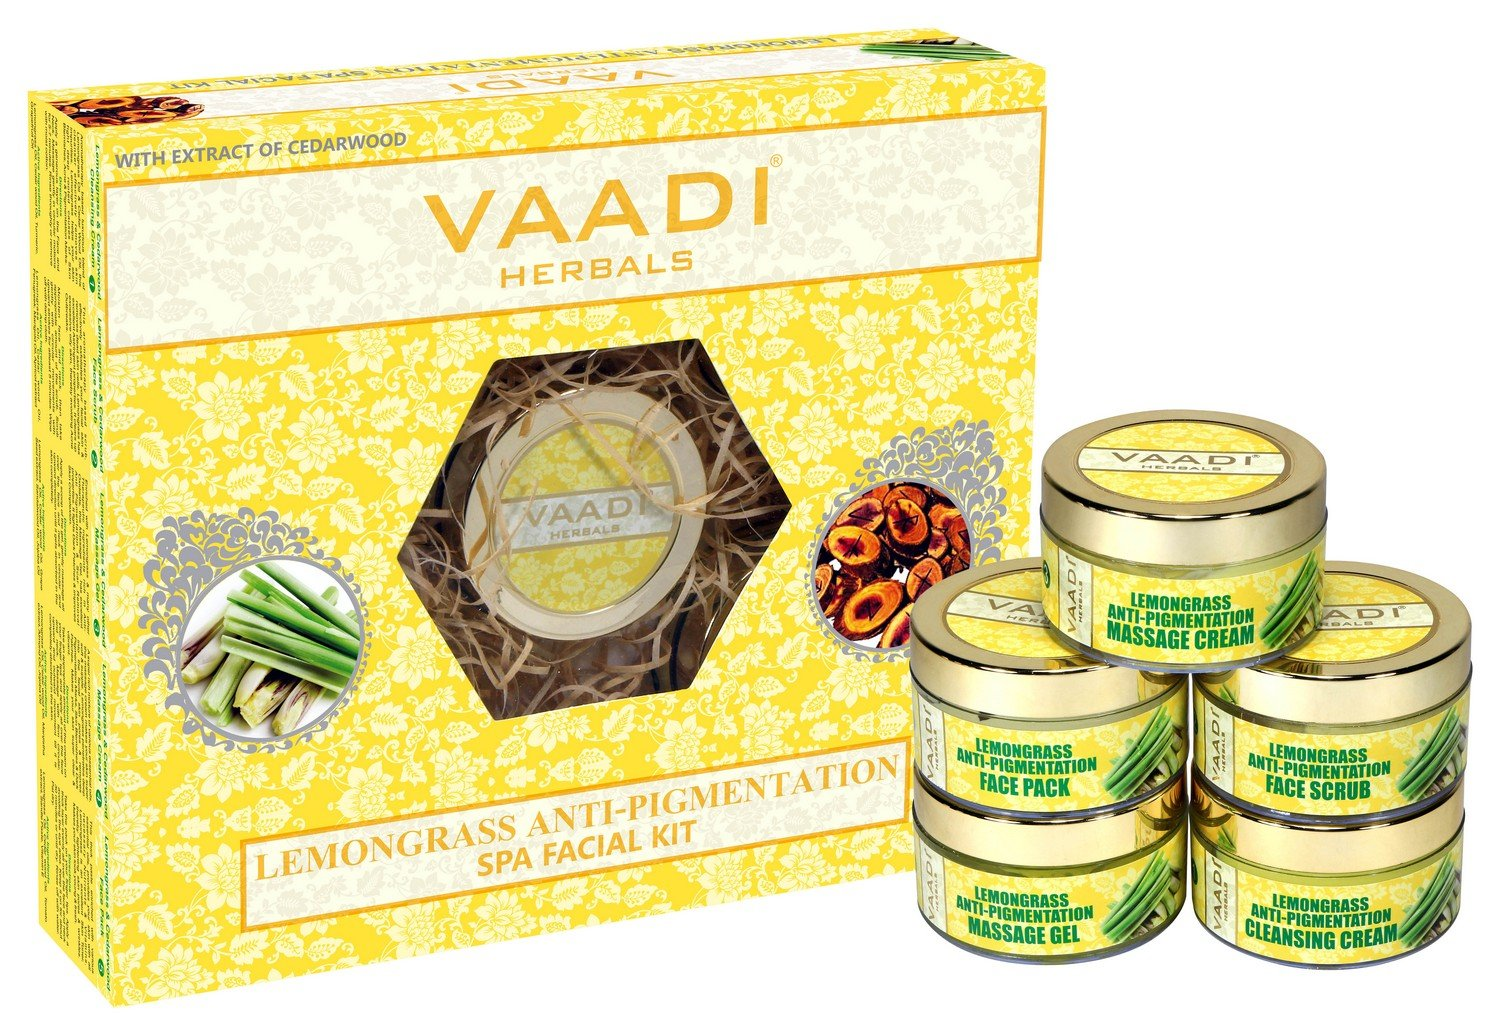 Vaadi Herbals Lemongrass Anti Pigmentation Spa Facial Kit with Cedarwood Extract, 270g product image